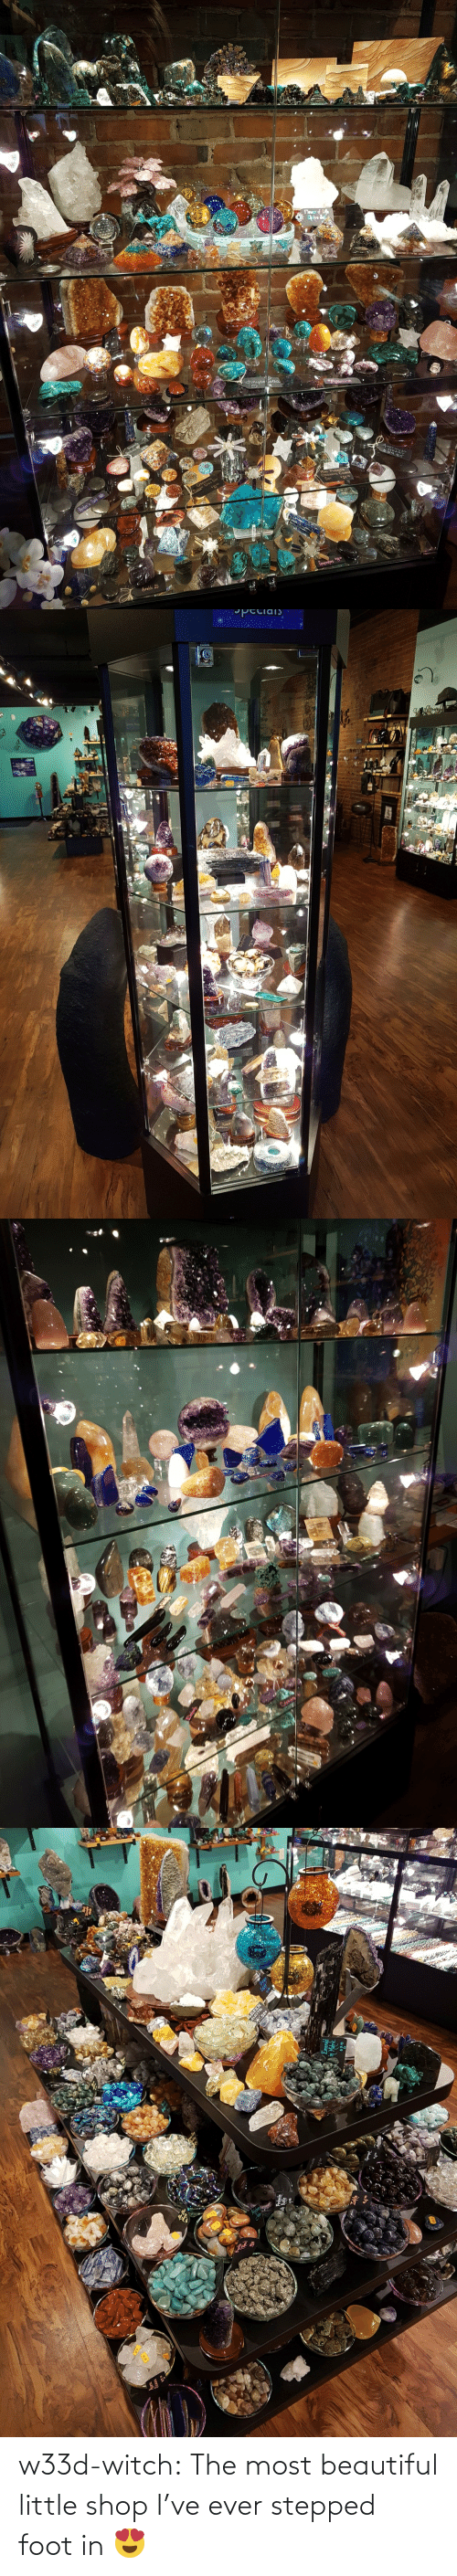 foot: w33d-witch: The most beautiful little shop I've ever stepped foot in 😍